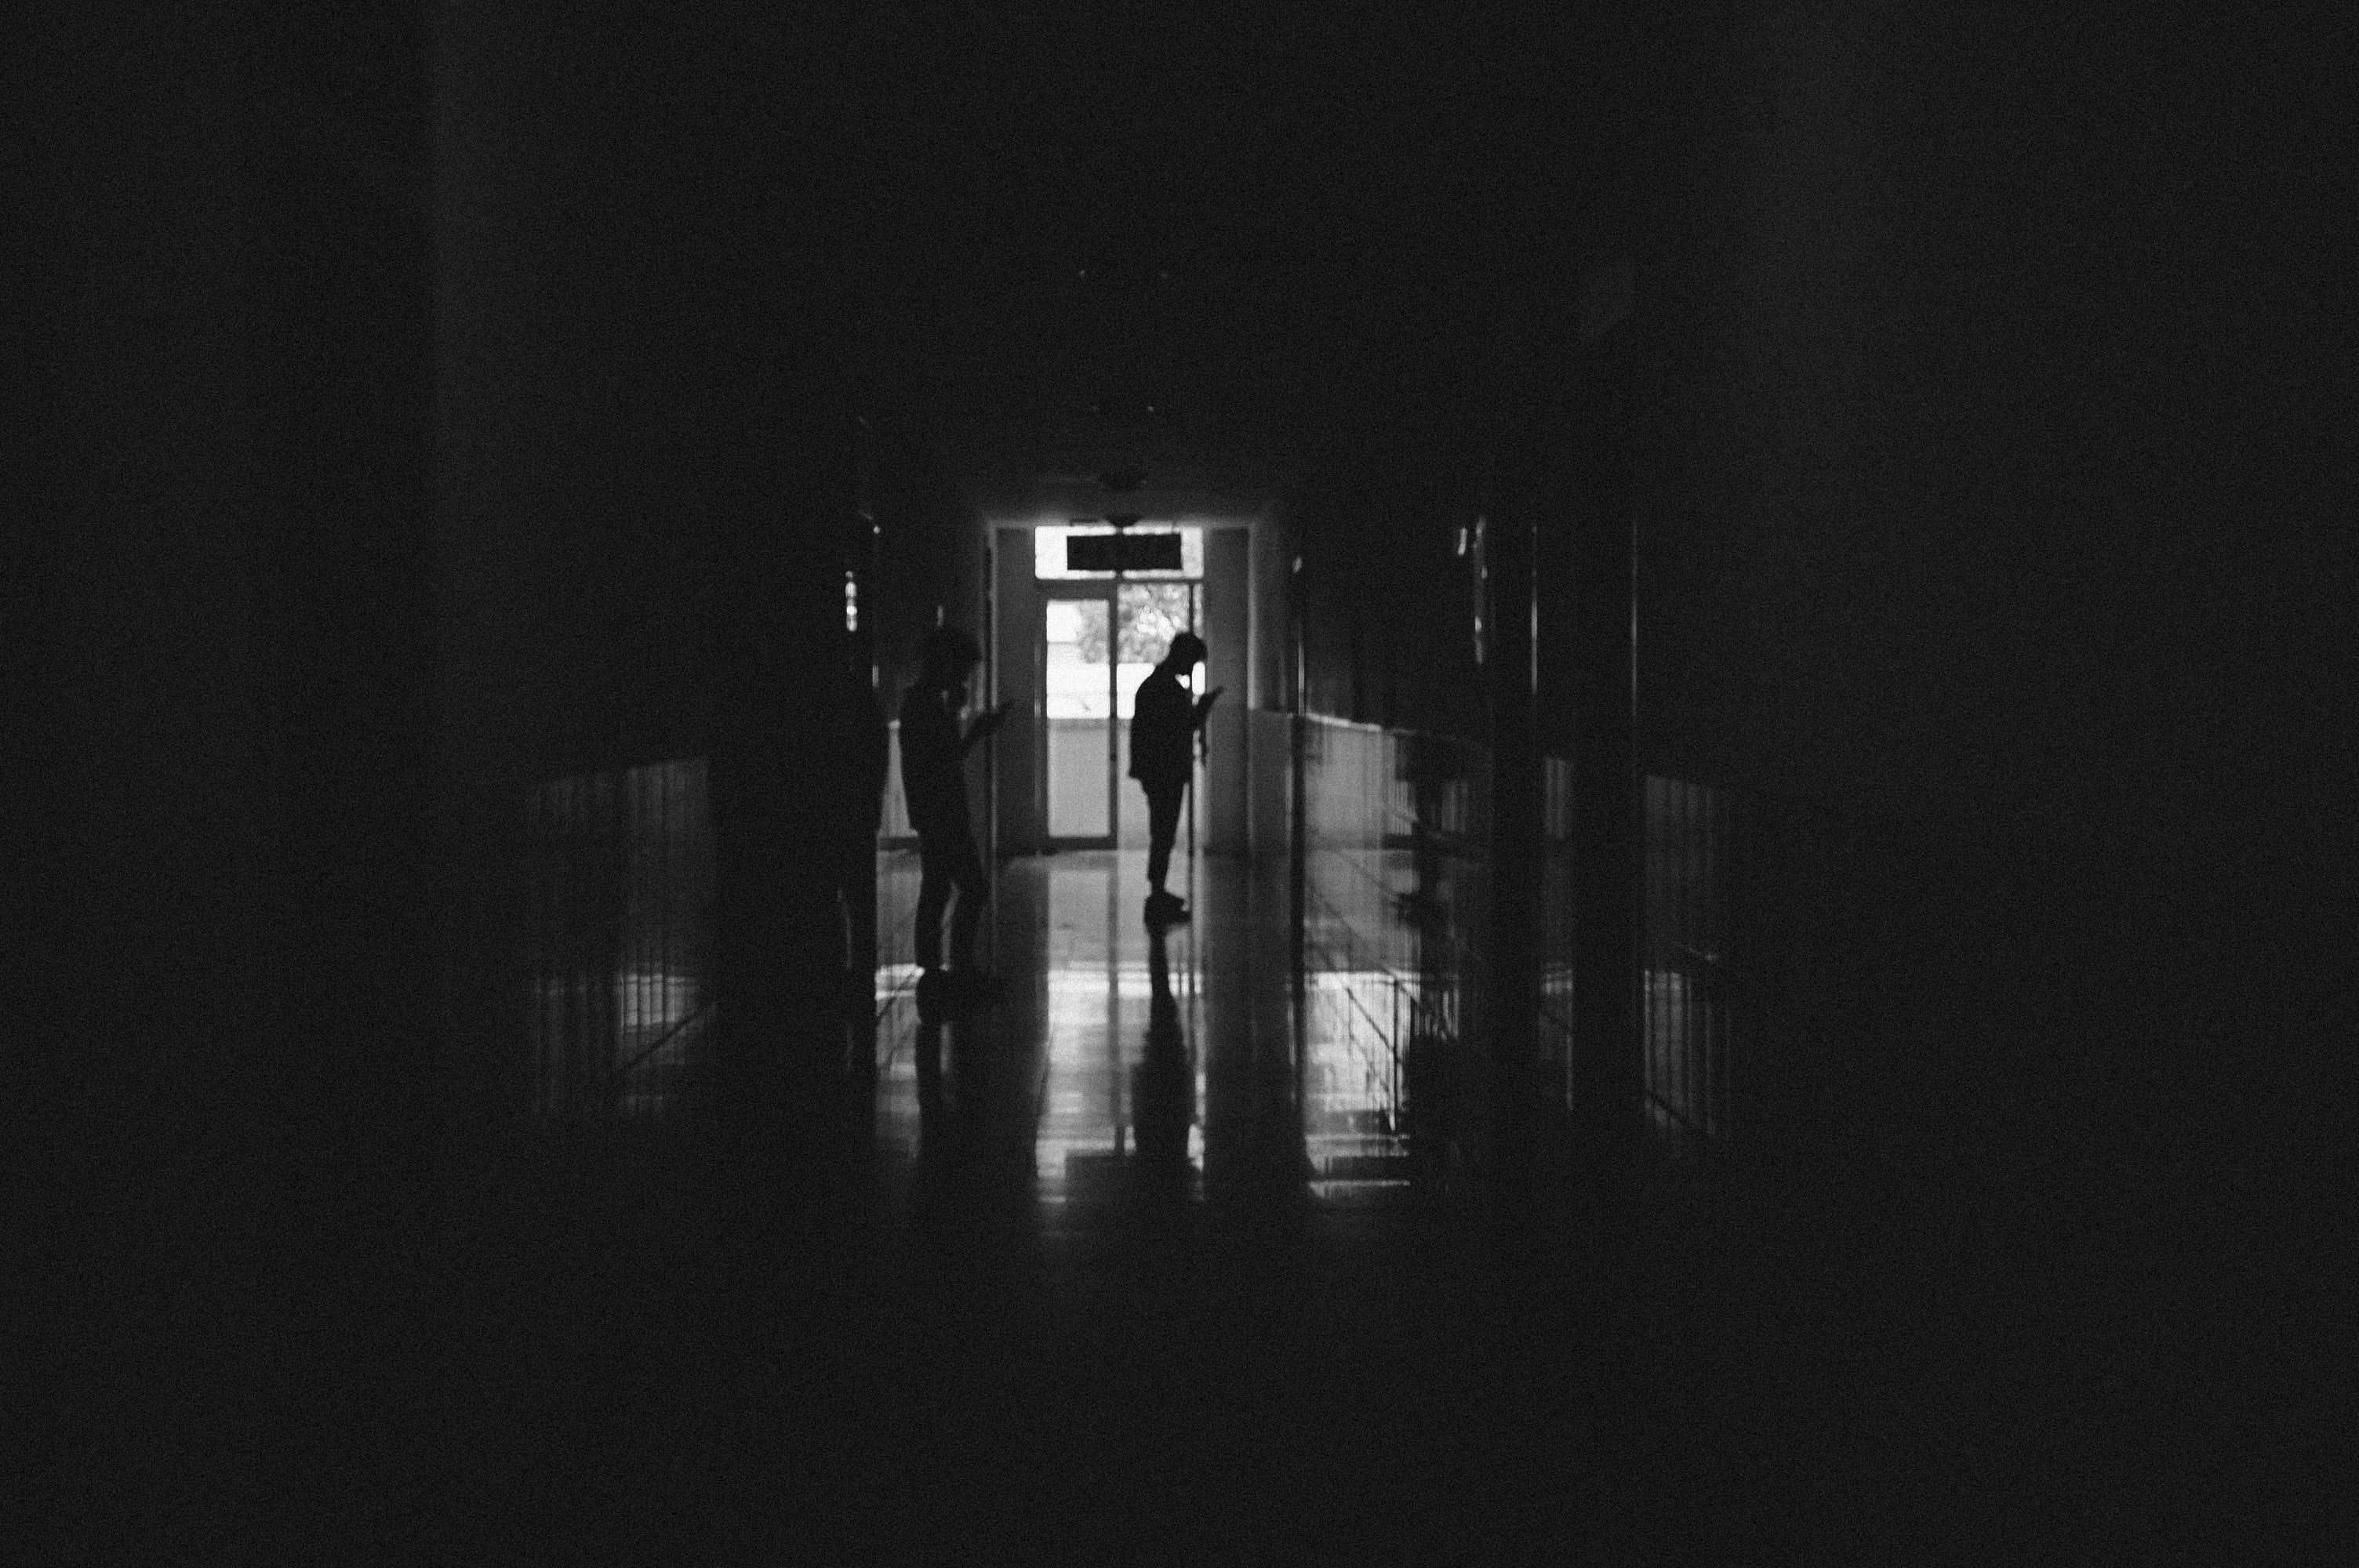 Silhouette of Corridor photo by Palon Youth